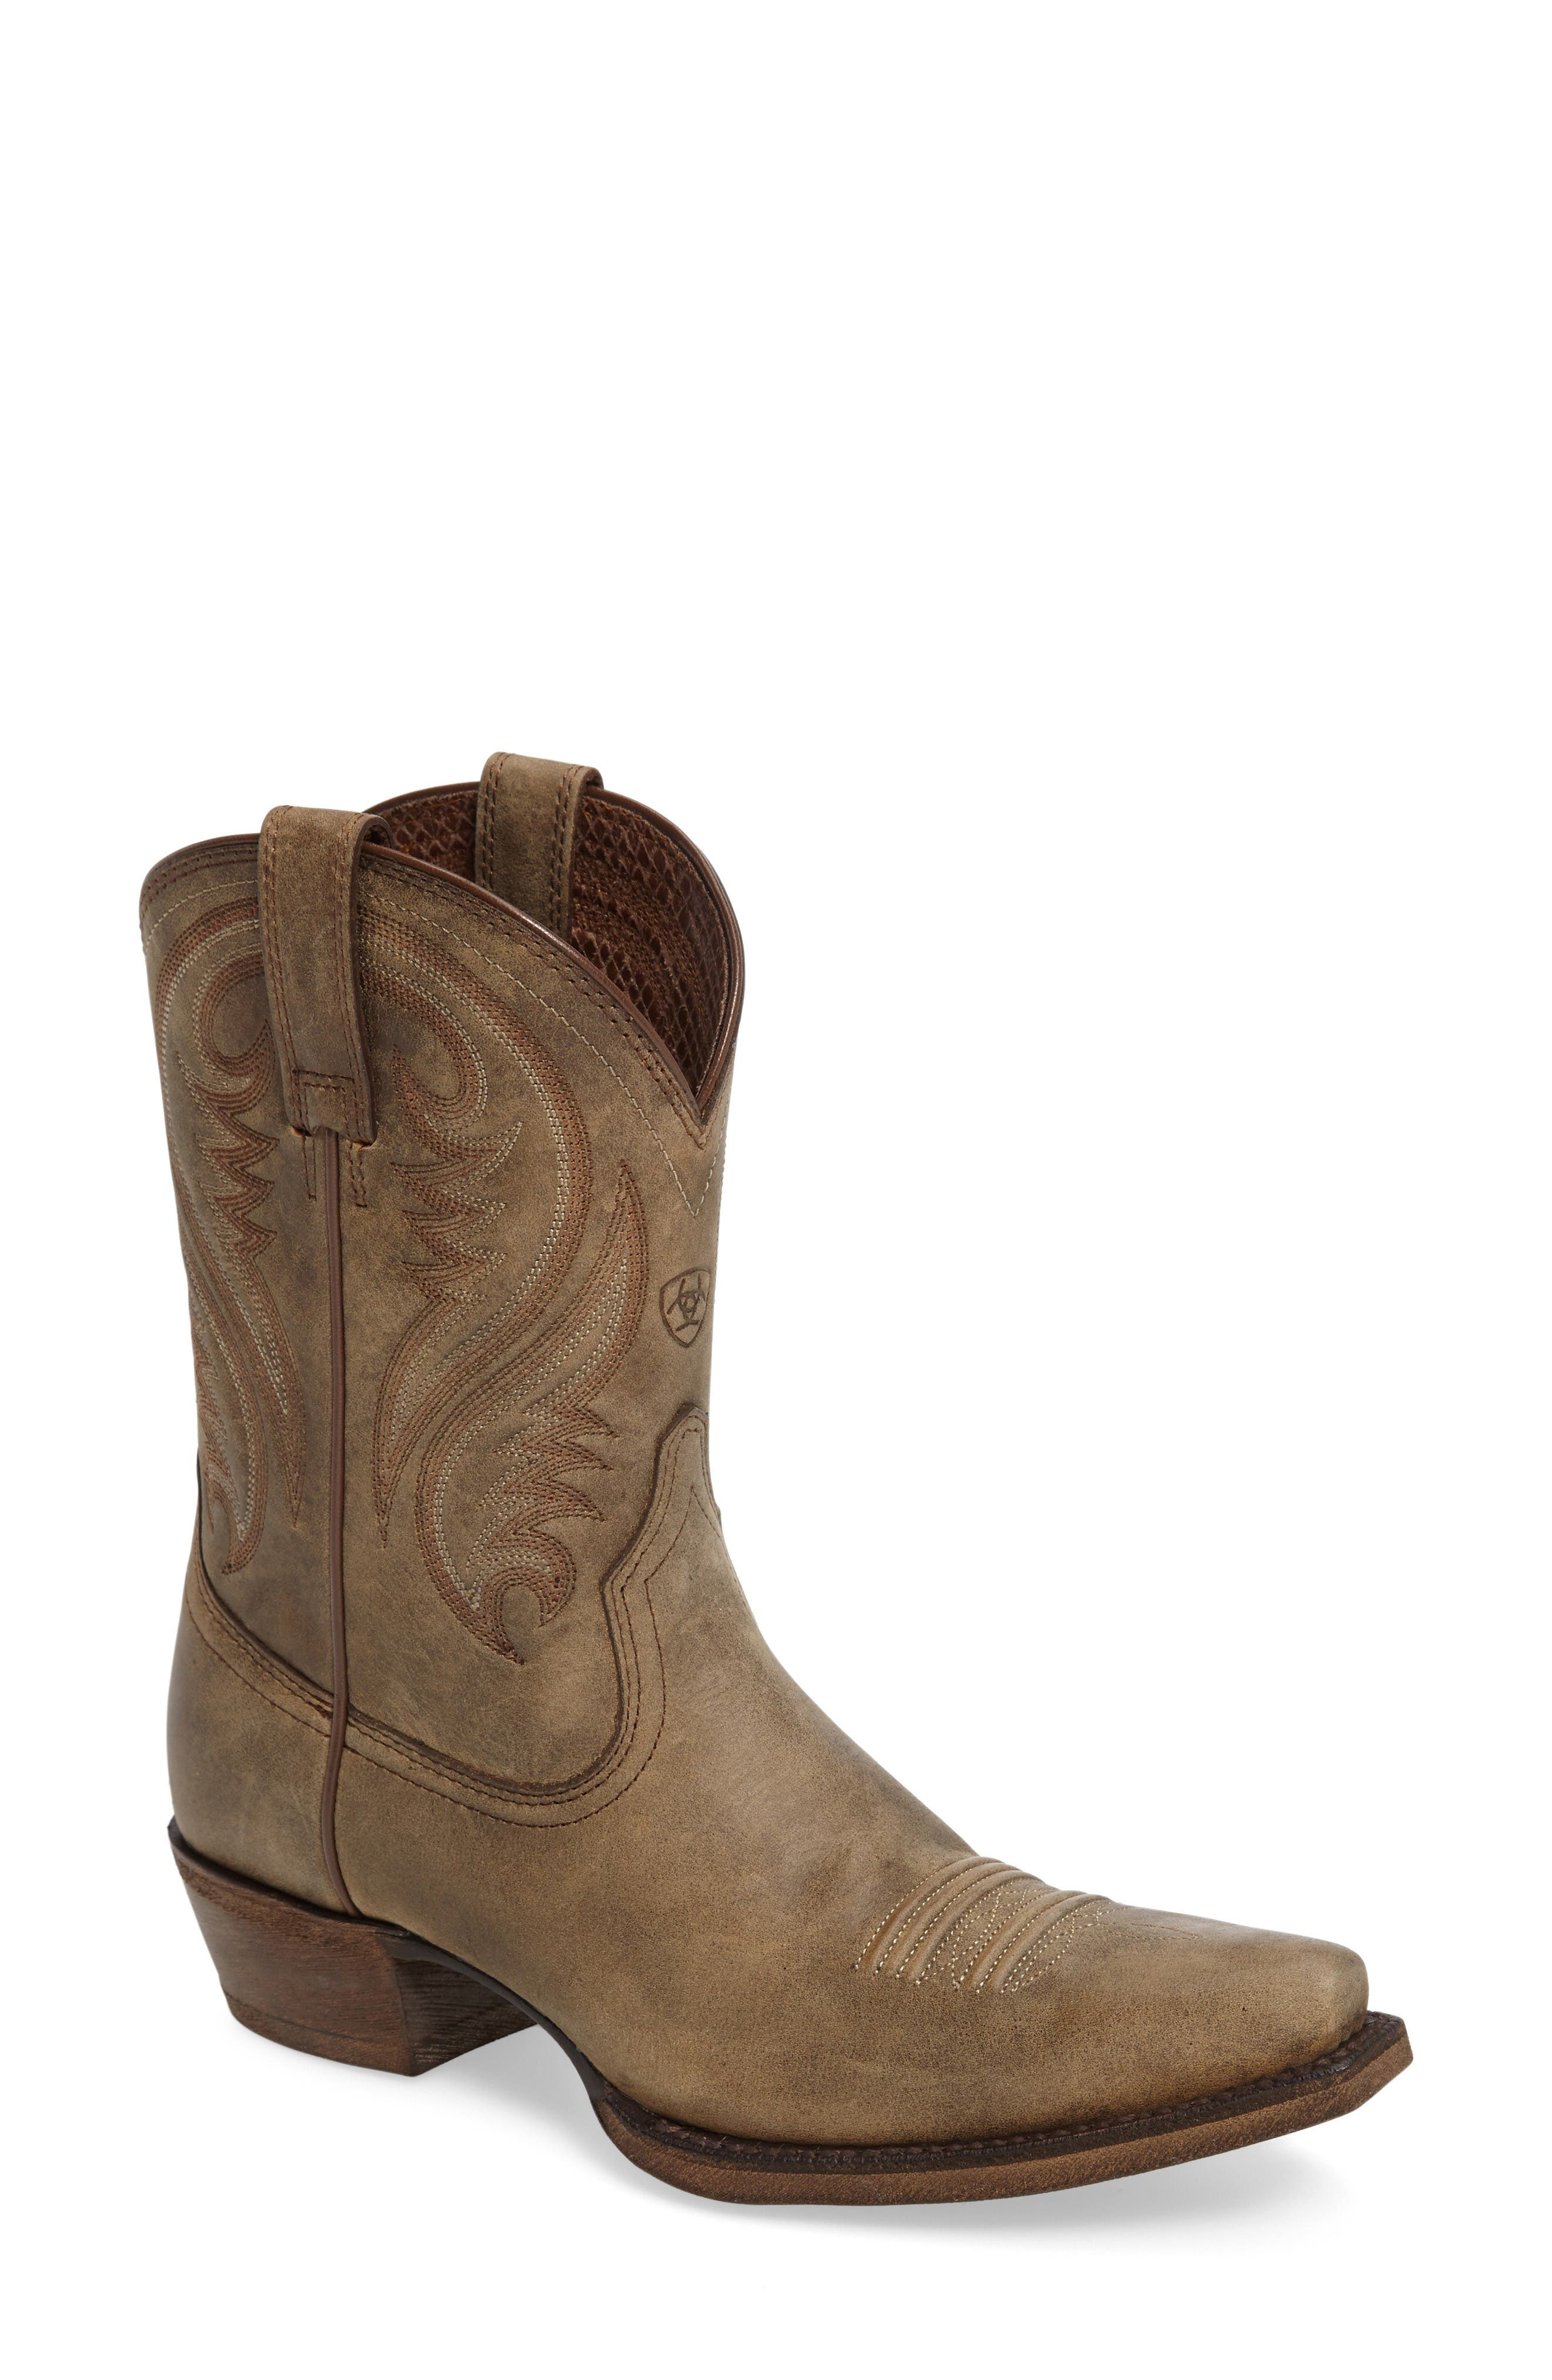 Main Image - Ariat Willow Western Boot (Women)